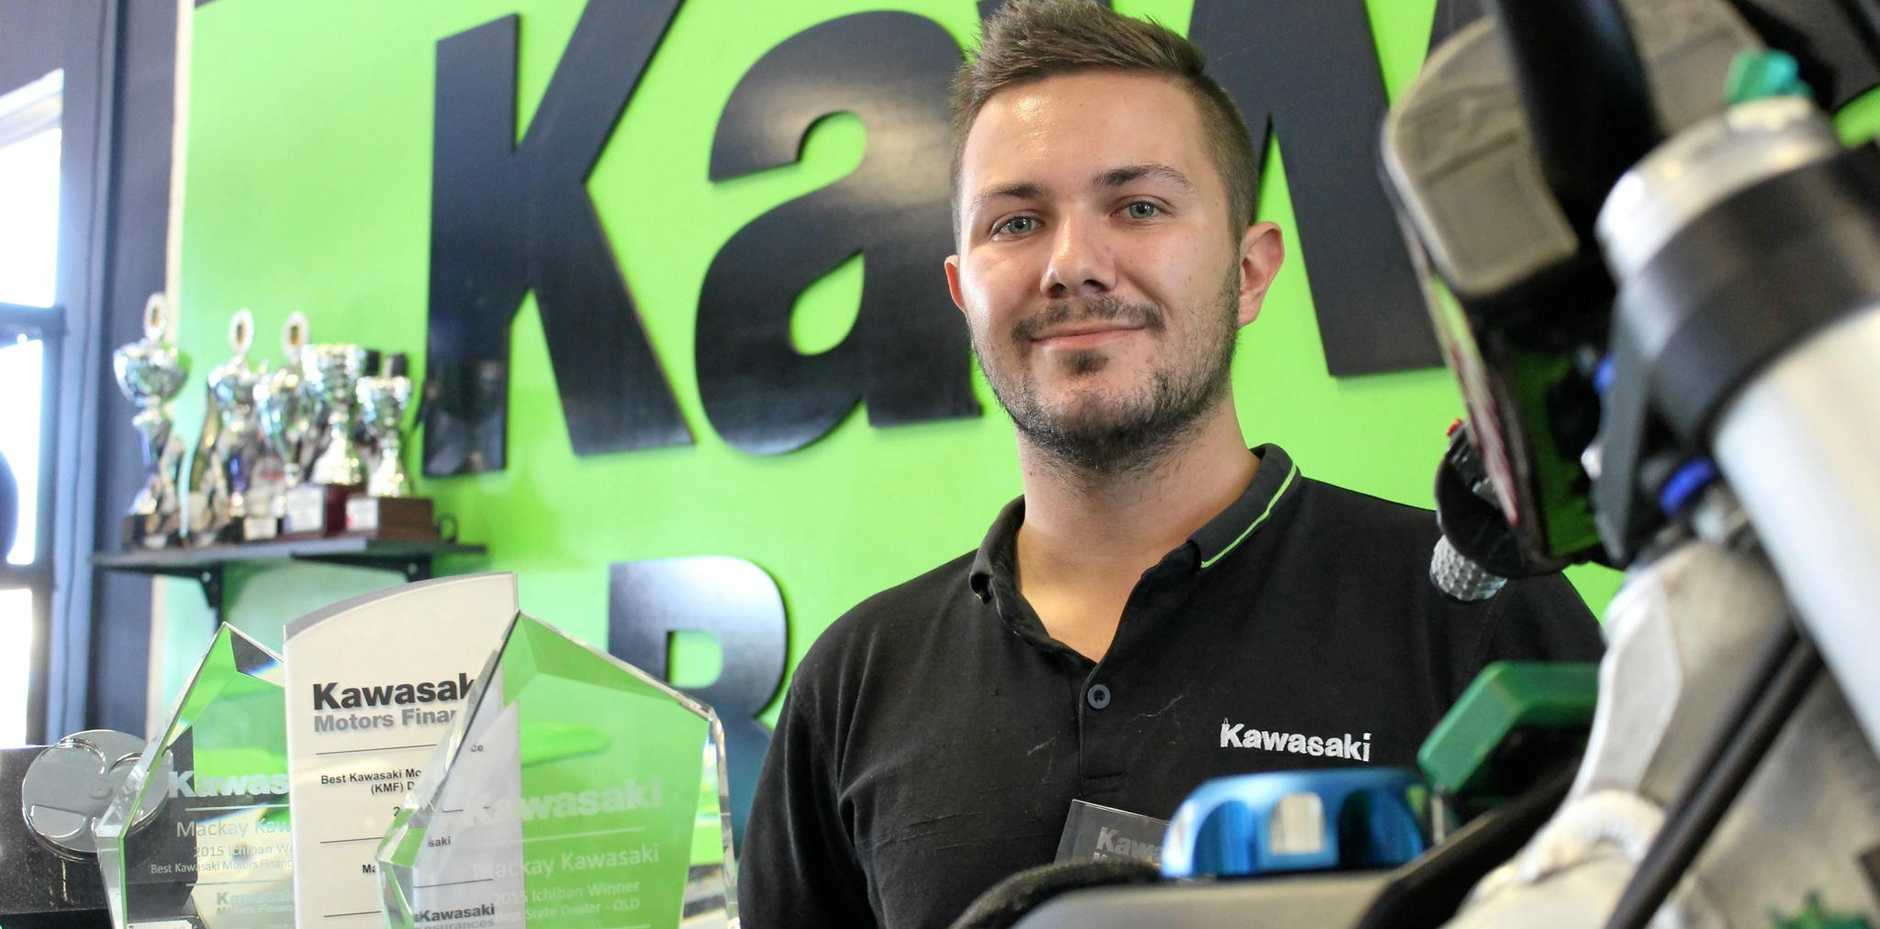 Luke Burgess of Mackay Kawasaki is proud of the family business after winning the brand's national Motor Finance Award for the third year running.